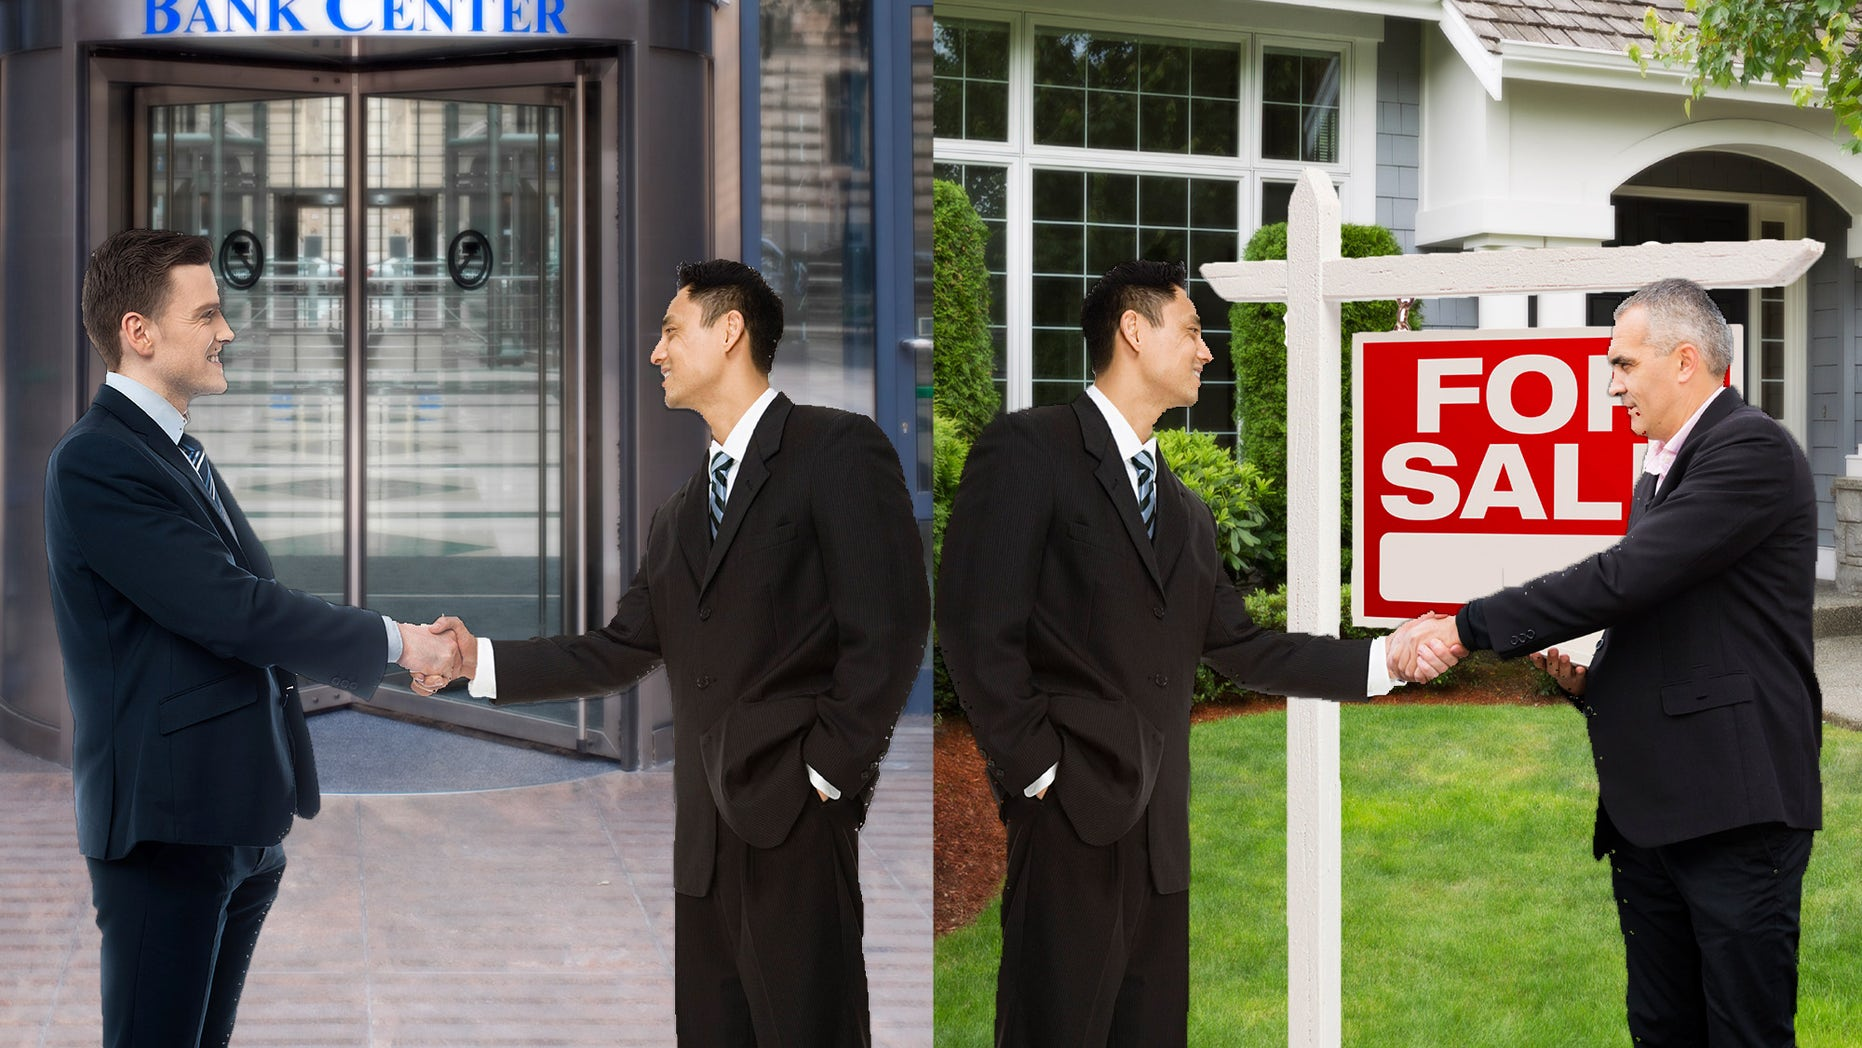 Refinancing and selling